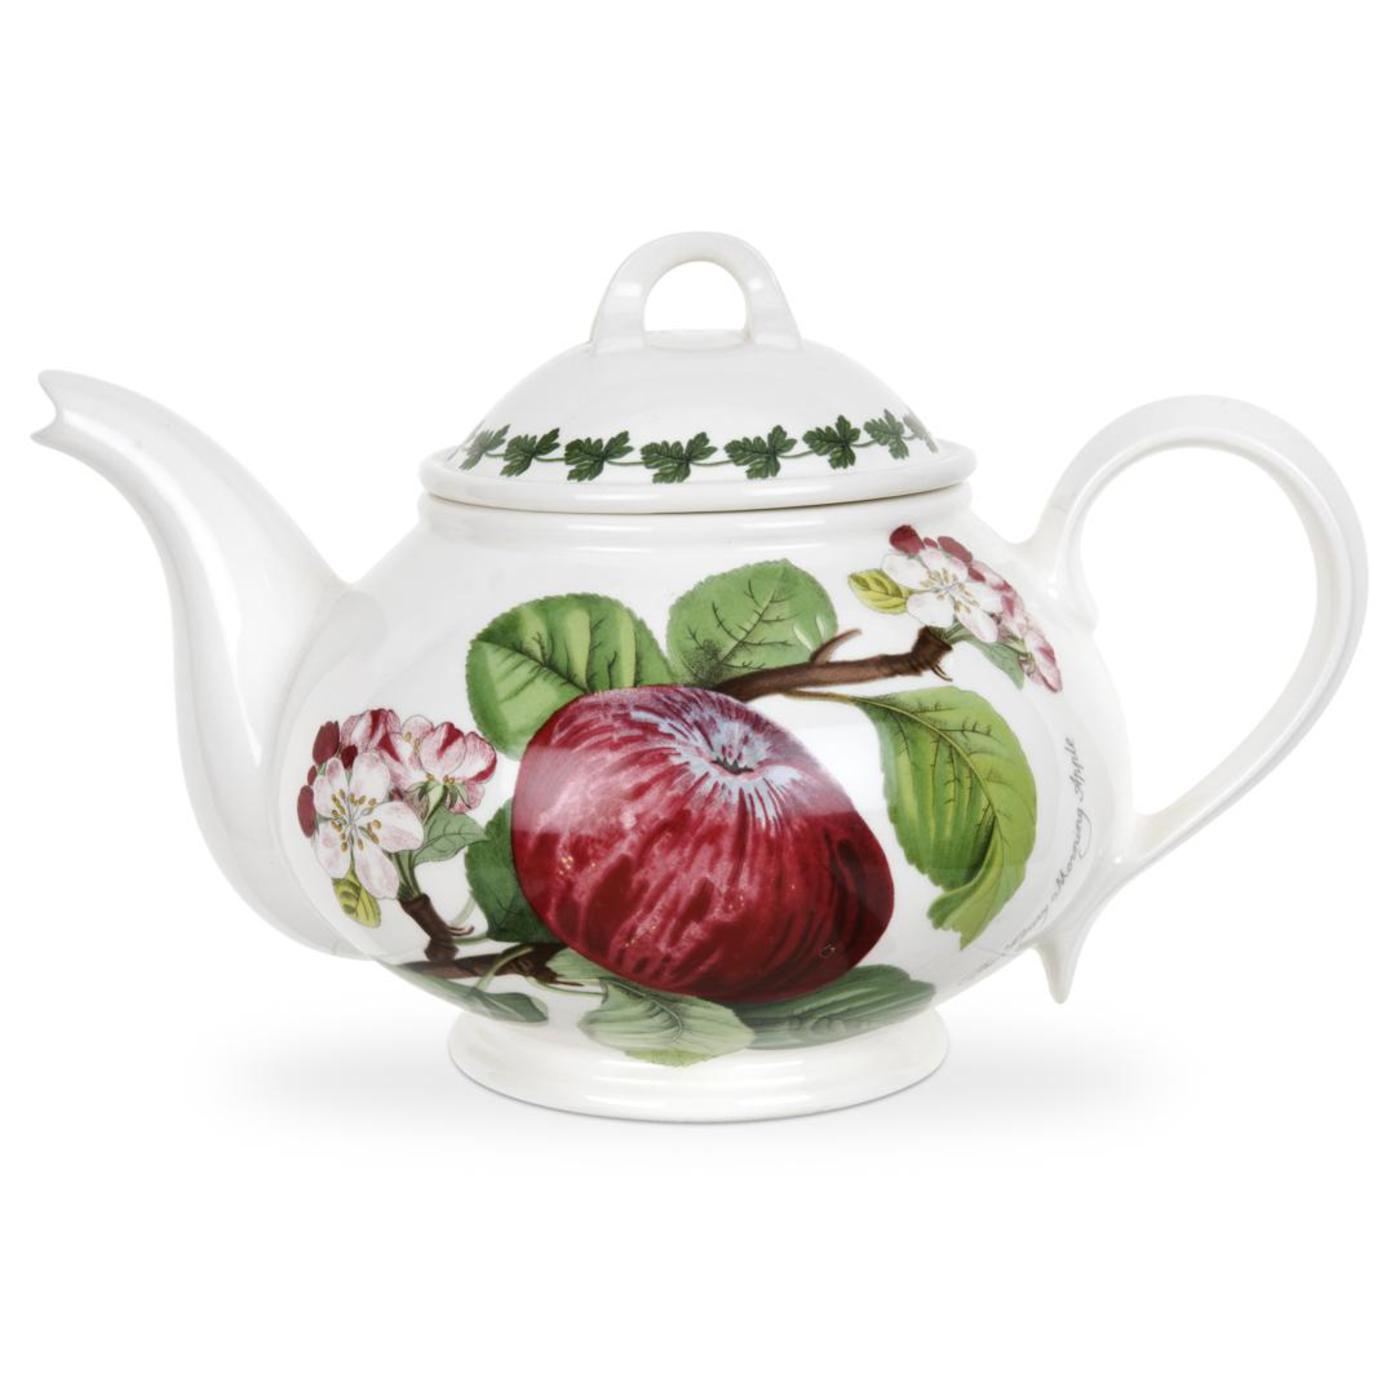 Portmeirion Pomona Teapot (Hoary Morning Apple) image number 0